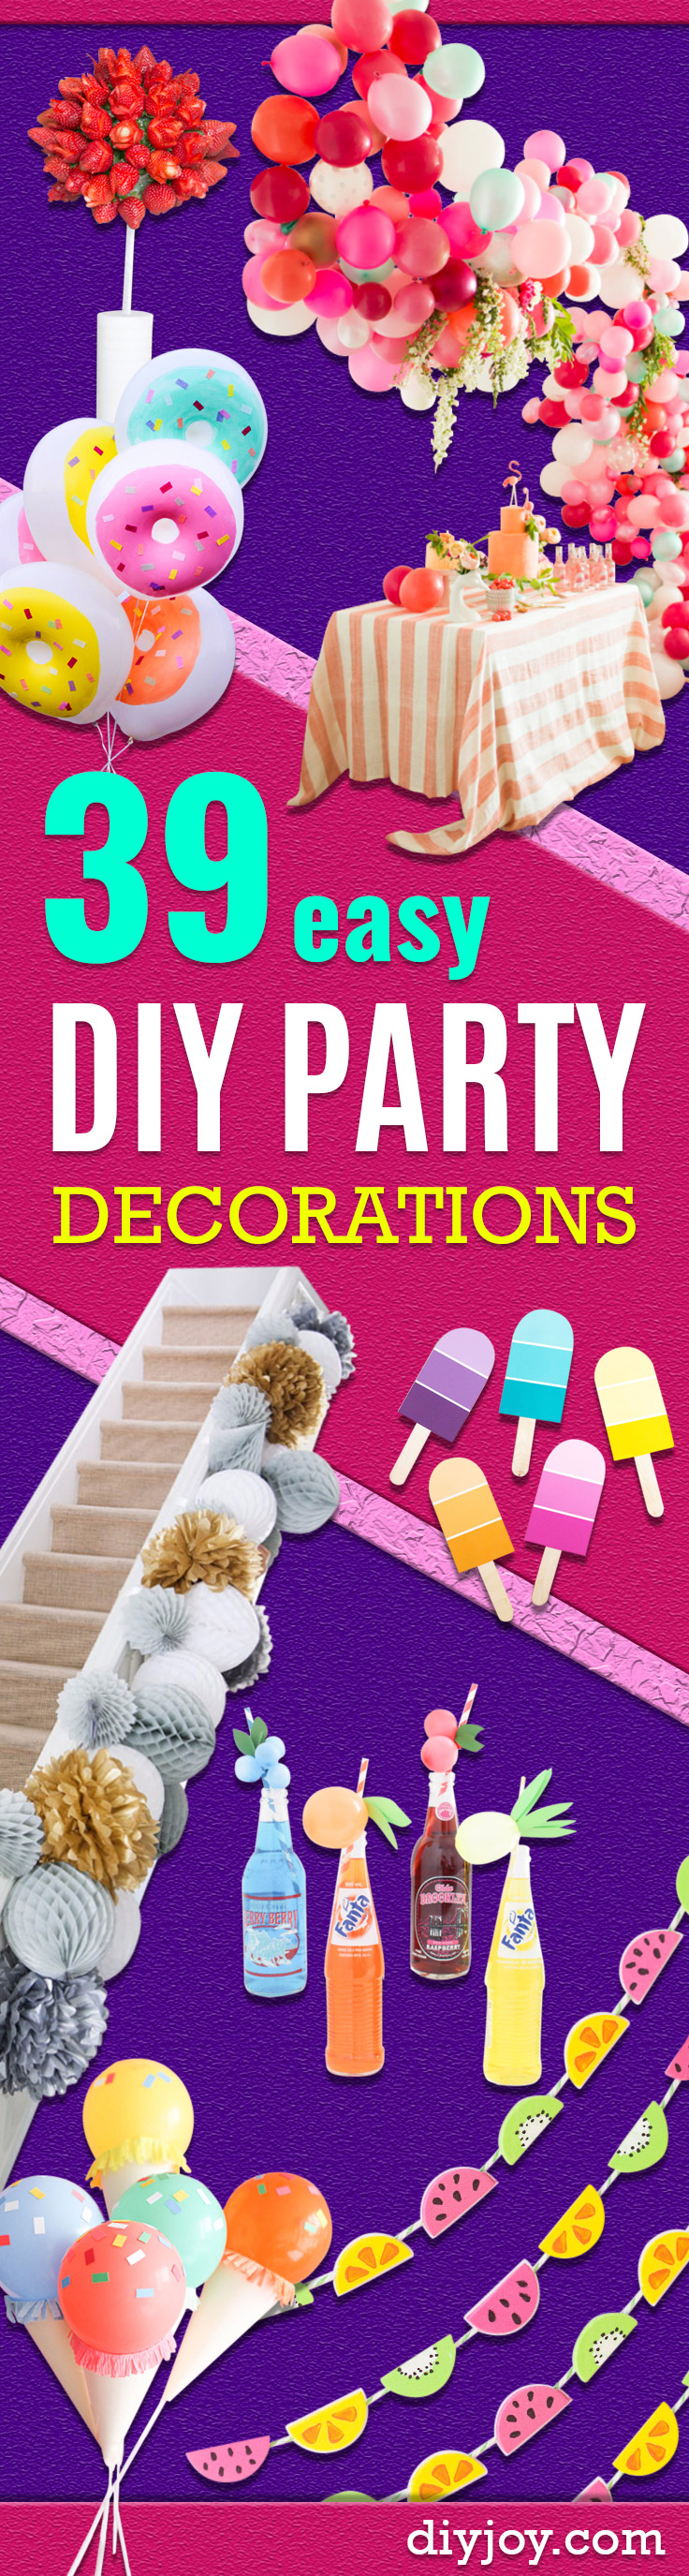 Easy DIY Party Decorations - Quick And Cheap Party Decors, Easy Ideas For DIY Party Decor, Birthday Decorations, Budget Do It Yourself Party Decorations